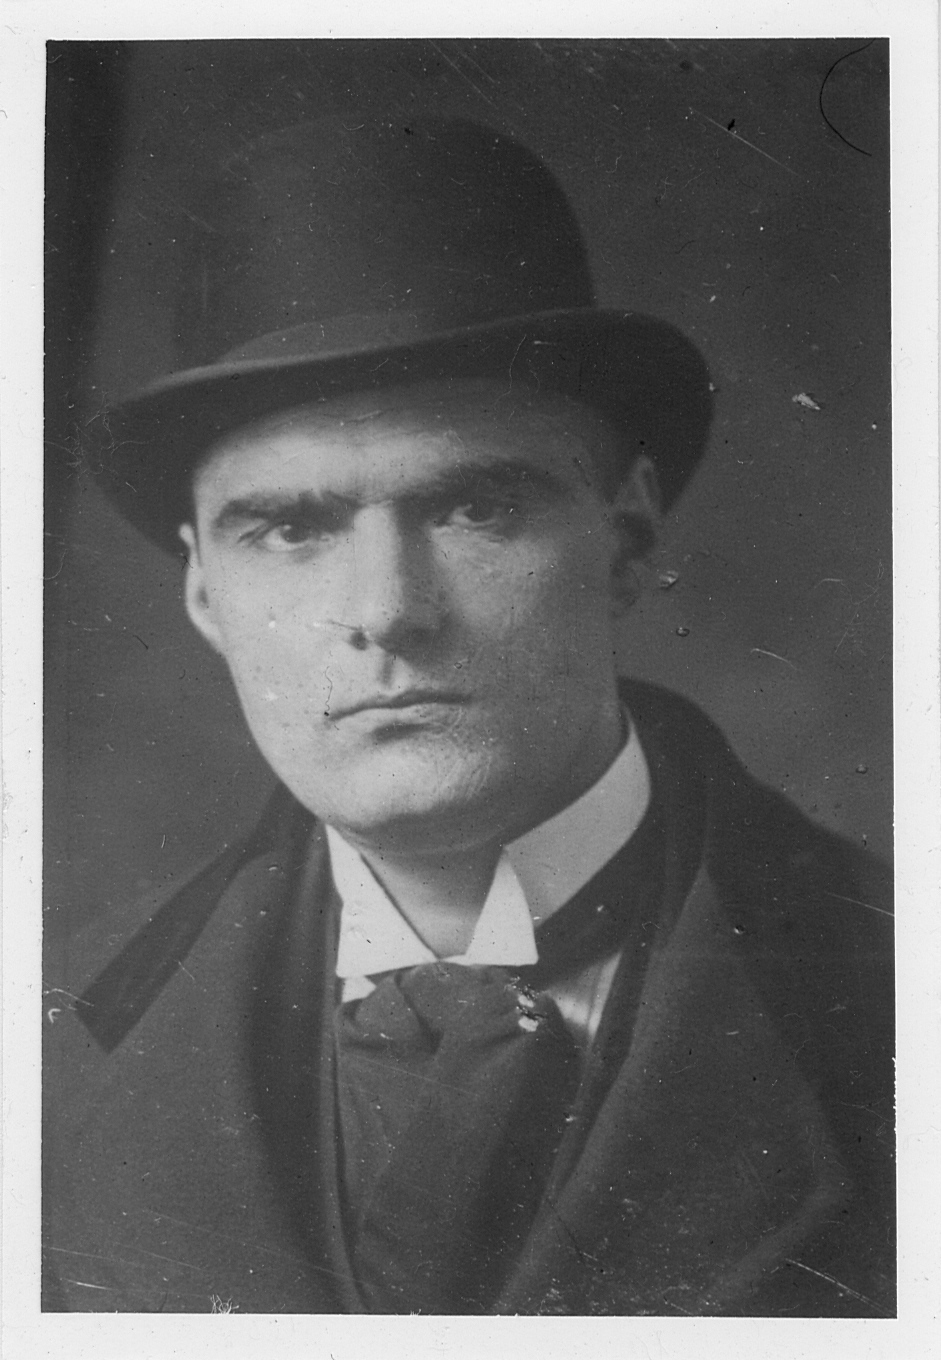 NAF 11_1_2 Dmitrije Mitrinovic 1920 portrait wearing hat